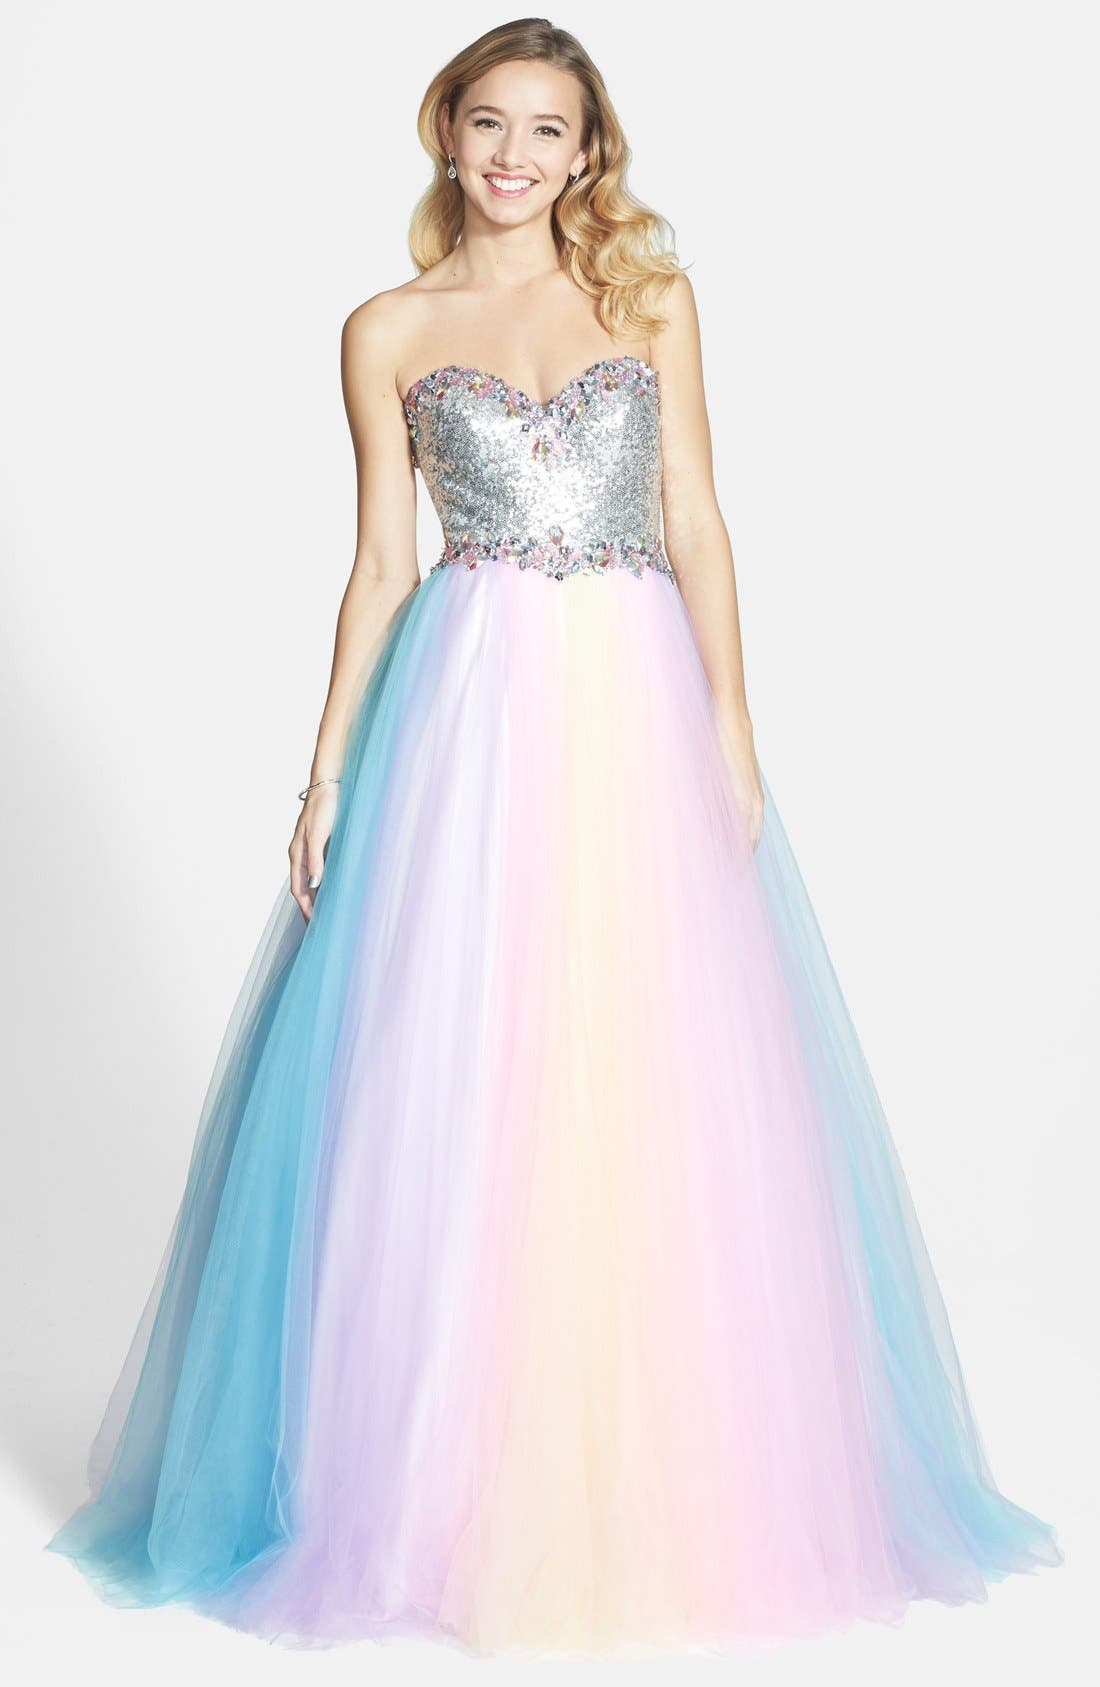 Main Image - Mac Duggal Rainbow Gown